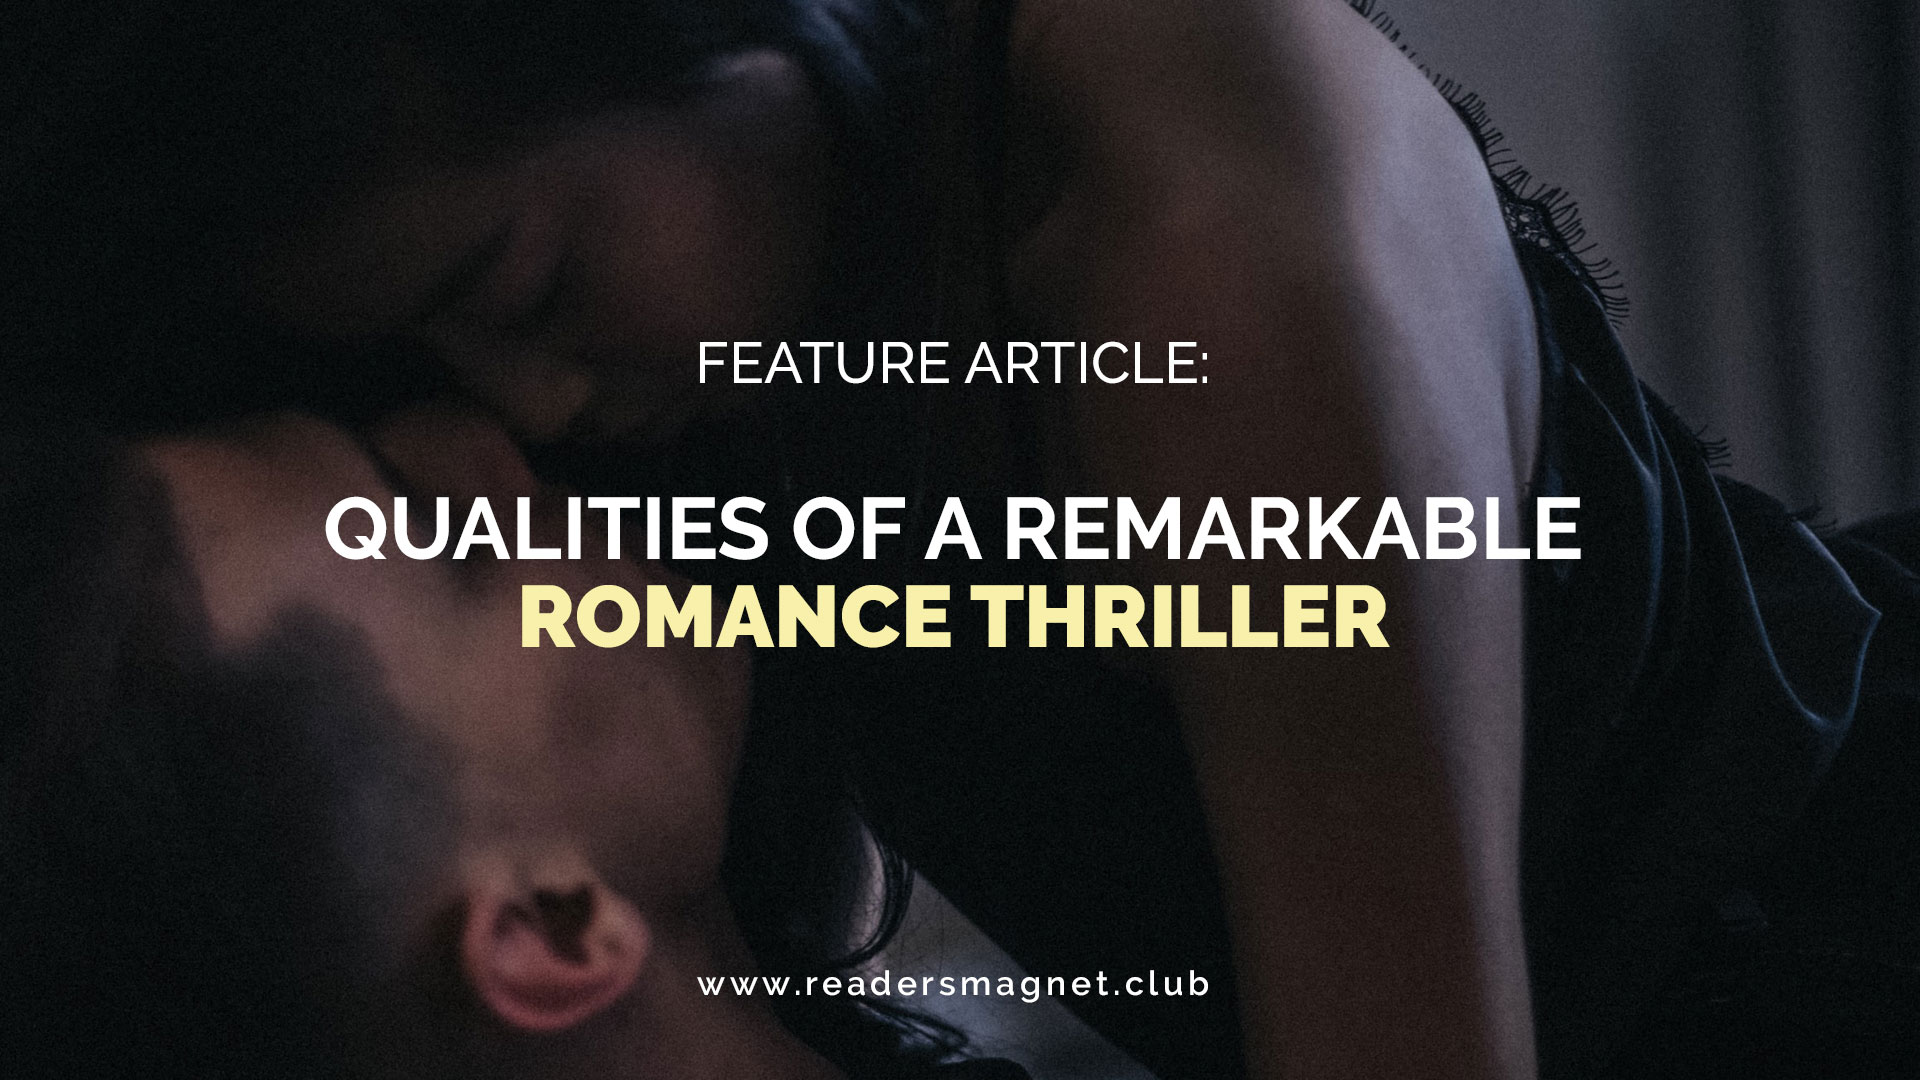 Feature-Article-Five-Qualities-of-a-Remarkable-Romance-Thriller banner